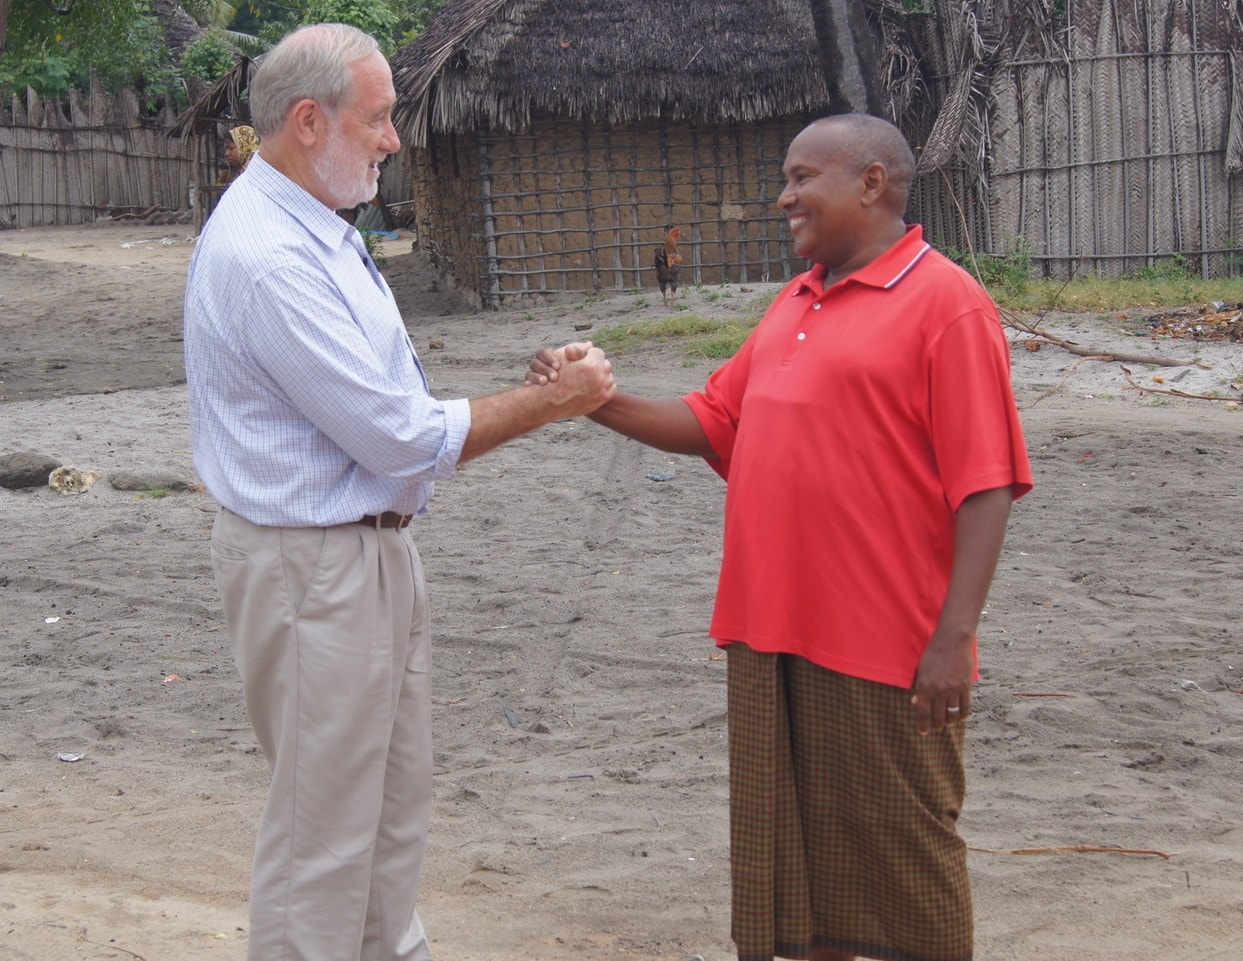 Professor Charles Mackenzie shaking hands with a patient in Tanzania